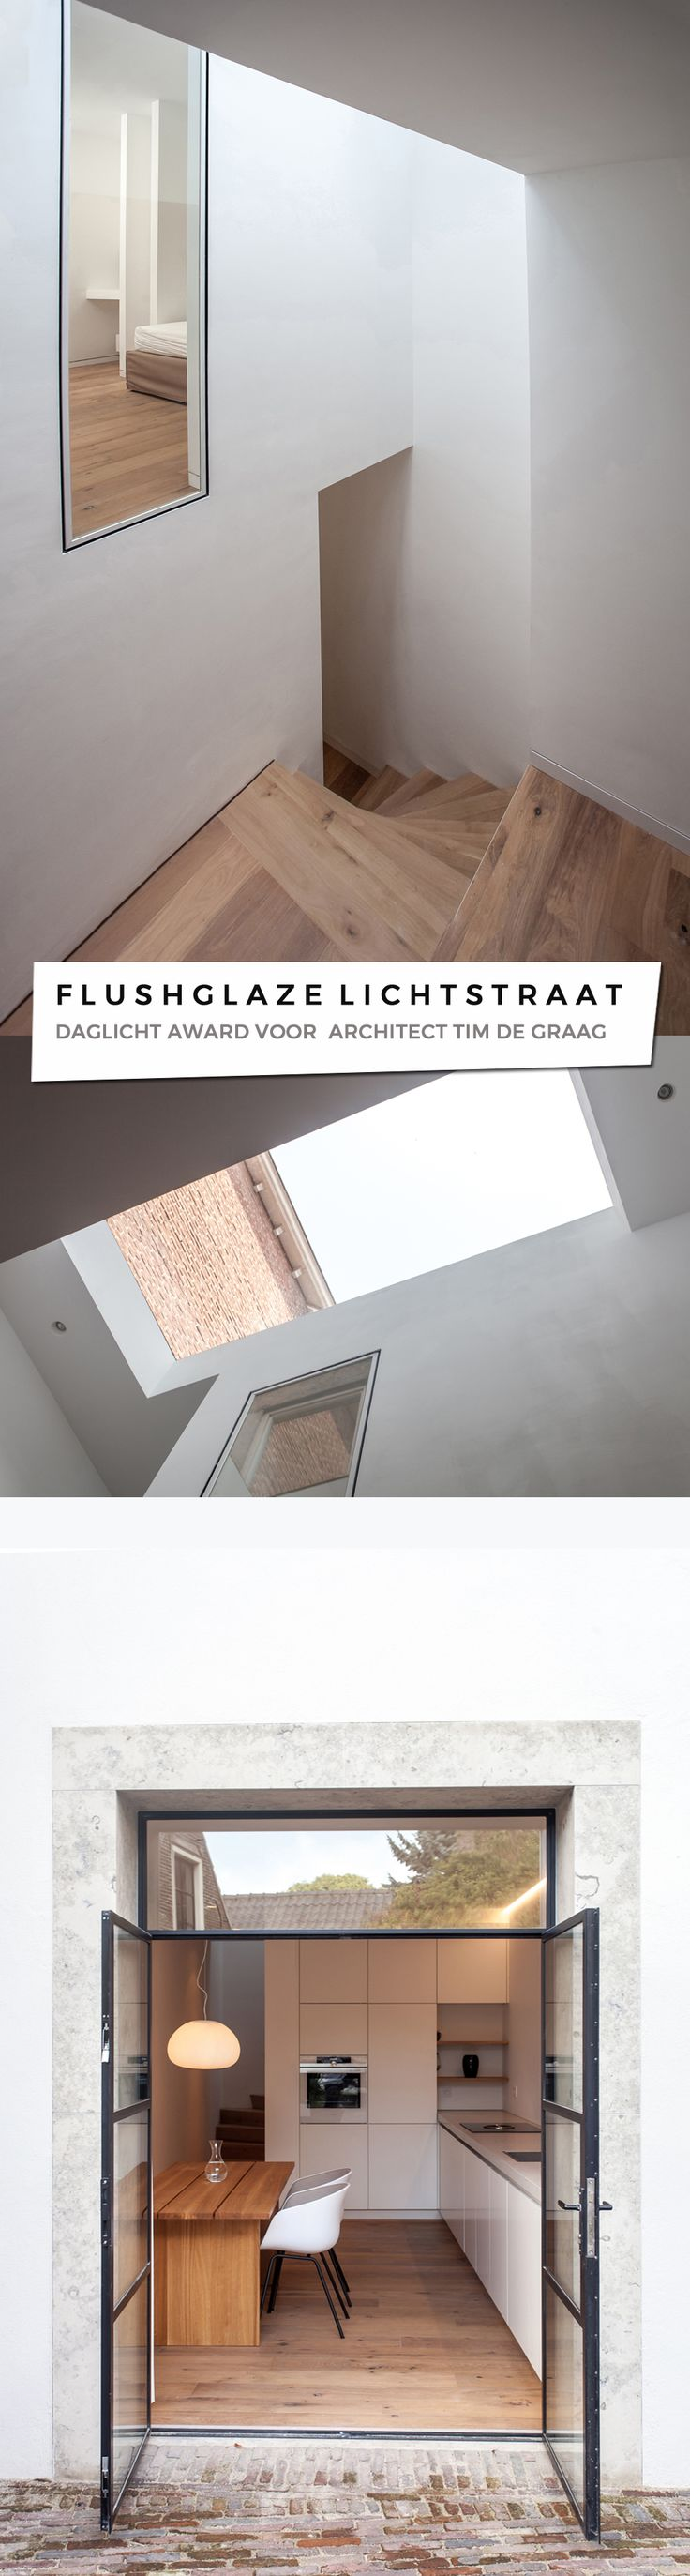 House 20×3 of young Dutch architect Tim de Graag has been rewarded the 2016 Daylight Award . Two rooflights of Glazing Vision were part of the concept.  TIM DE GRAAG WINT DAYLIGHT AWARD MET TRANSFORMATIE 3 METER BREED RIJKSMONUMENT.  De jonge architect Tim de Graag wint met het project 20×3 de Daylight Award 2016.